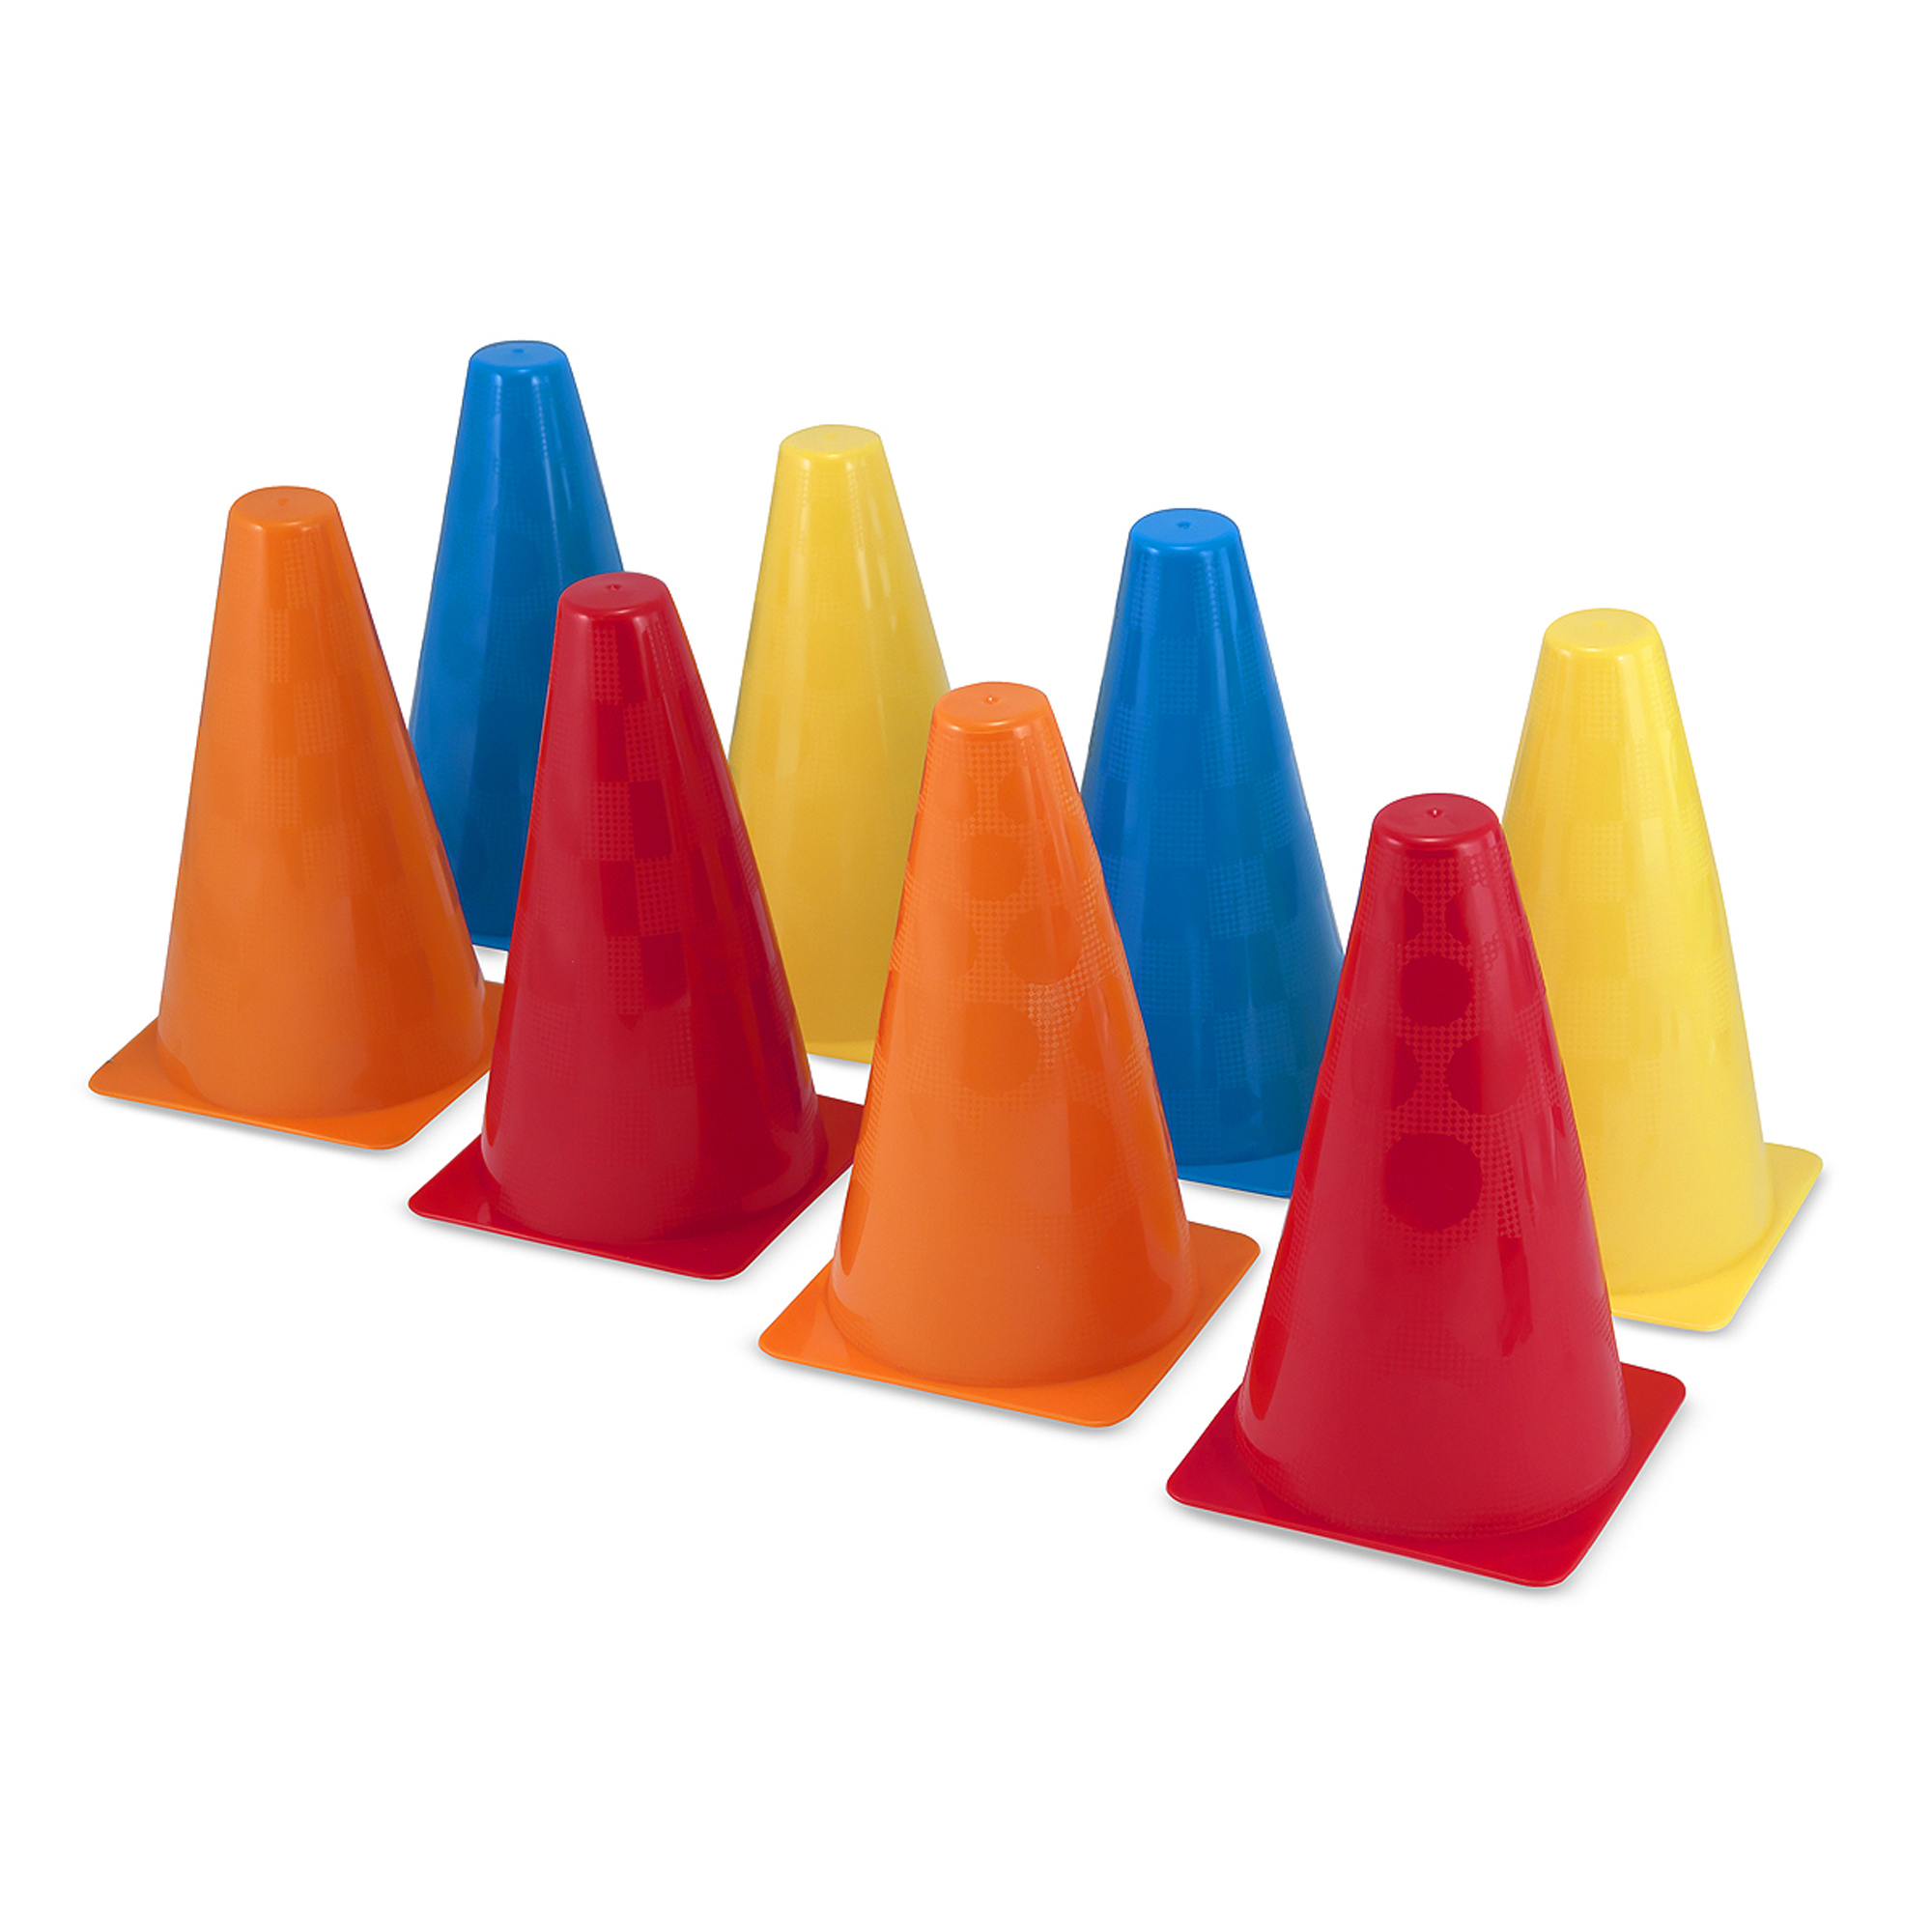 """Grab a stack of these sturdy plastic cones and head outside to play! Four different colors and two textures make every cone unique, so they're great for traditional outdoor games and so much more. The included play guide includes instructions for dozens of exciting activities from races to balance games, plus bonus tips to inspire your own ideas for enjoying this indoor-and-outdoor toy. Durably built and cast in fade-resistant colors, these exciting little """"construction cones"""" will stay standing tall and looking great, from water play to sports games to pretend play and beyond!"""